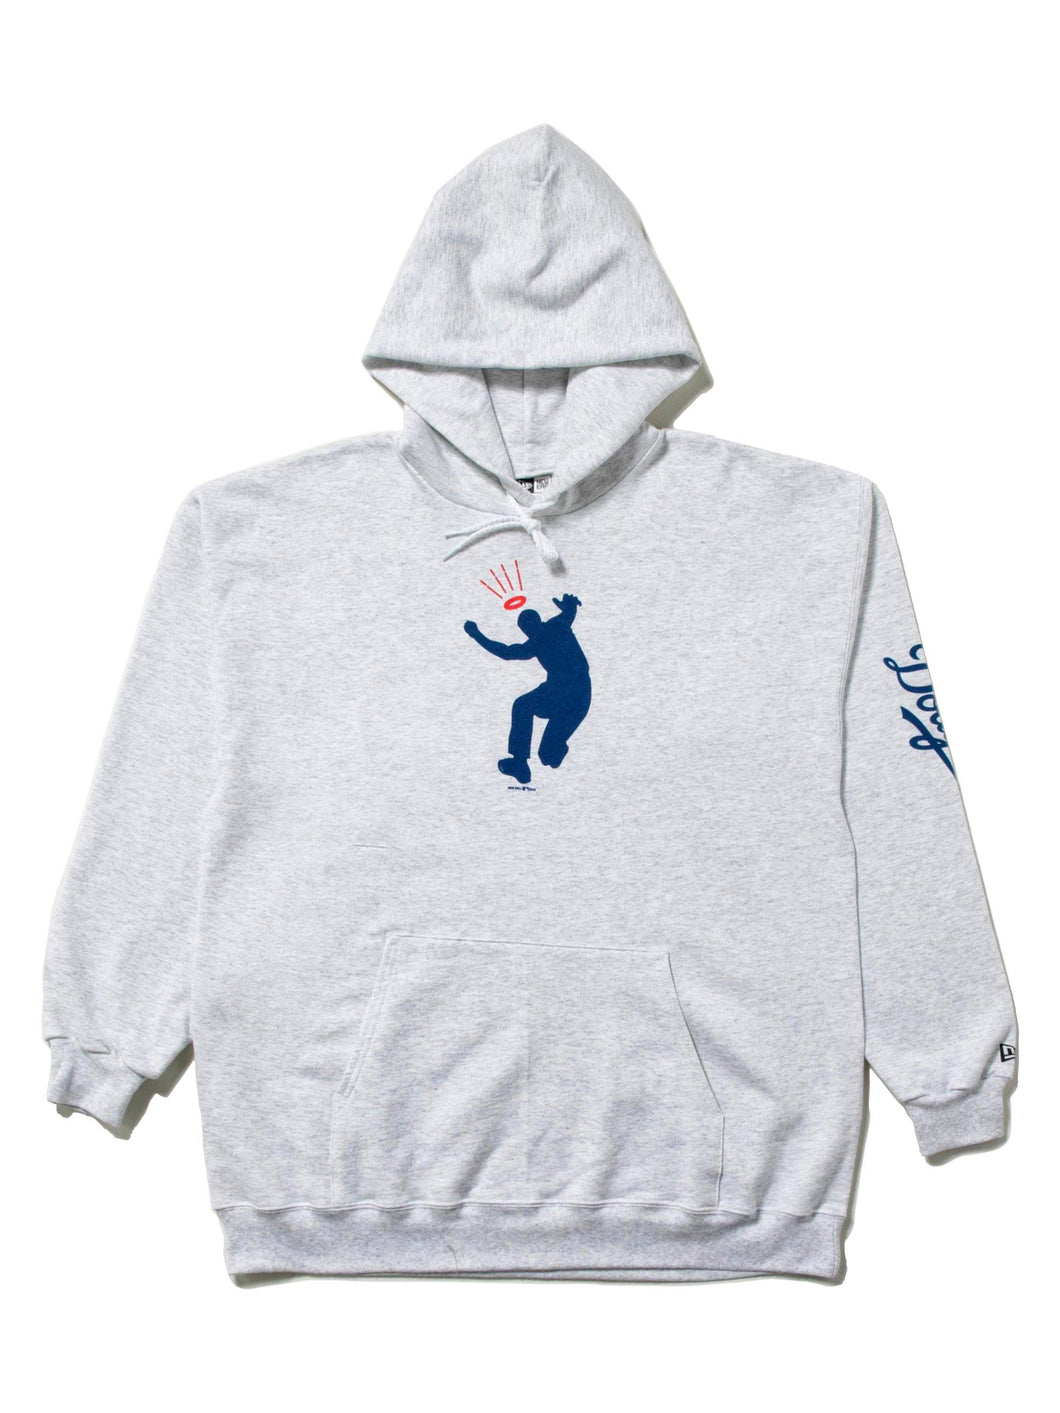 Union x Dodgers Crown Hoodie - Grey